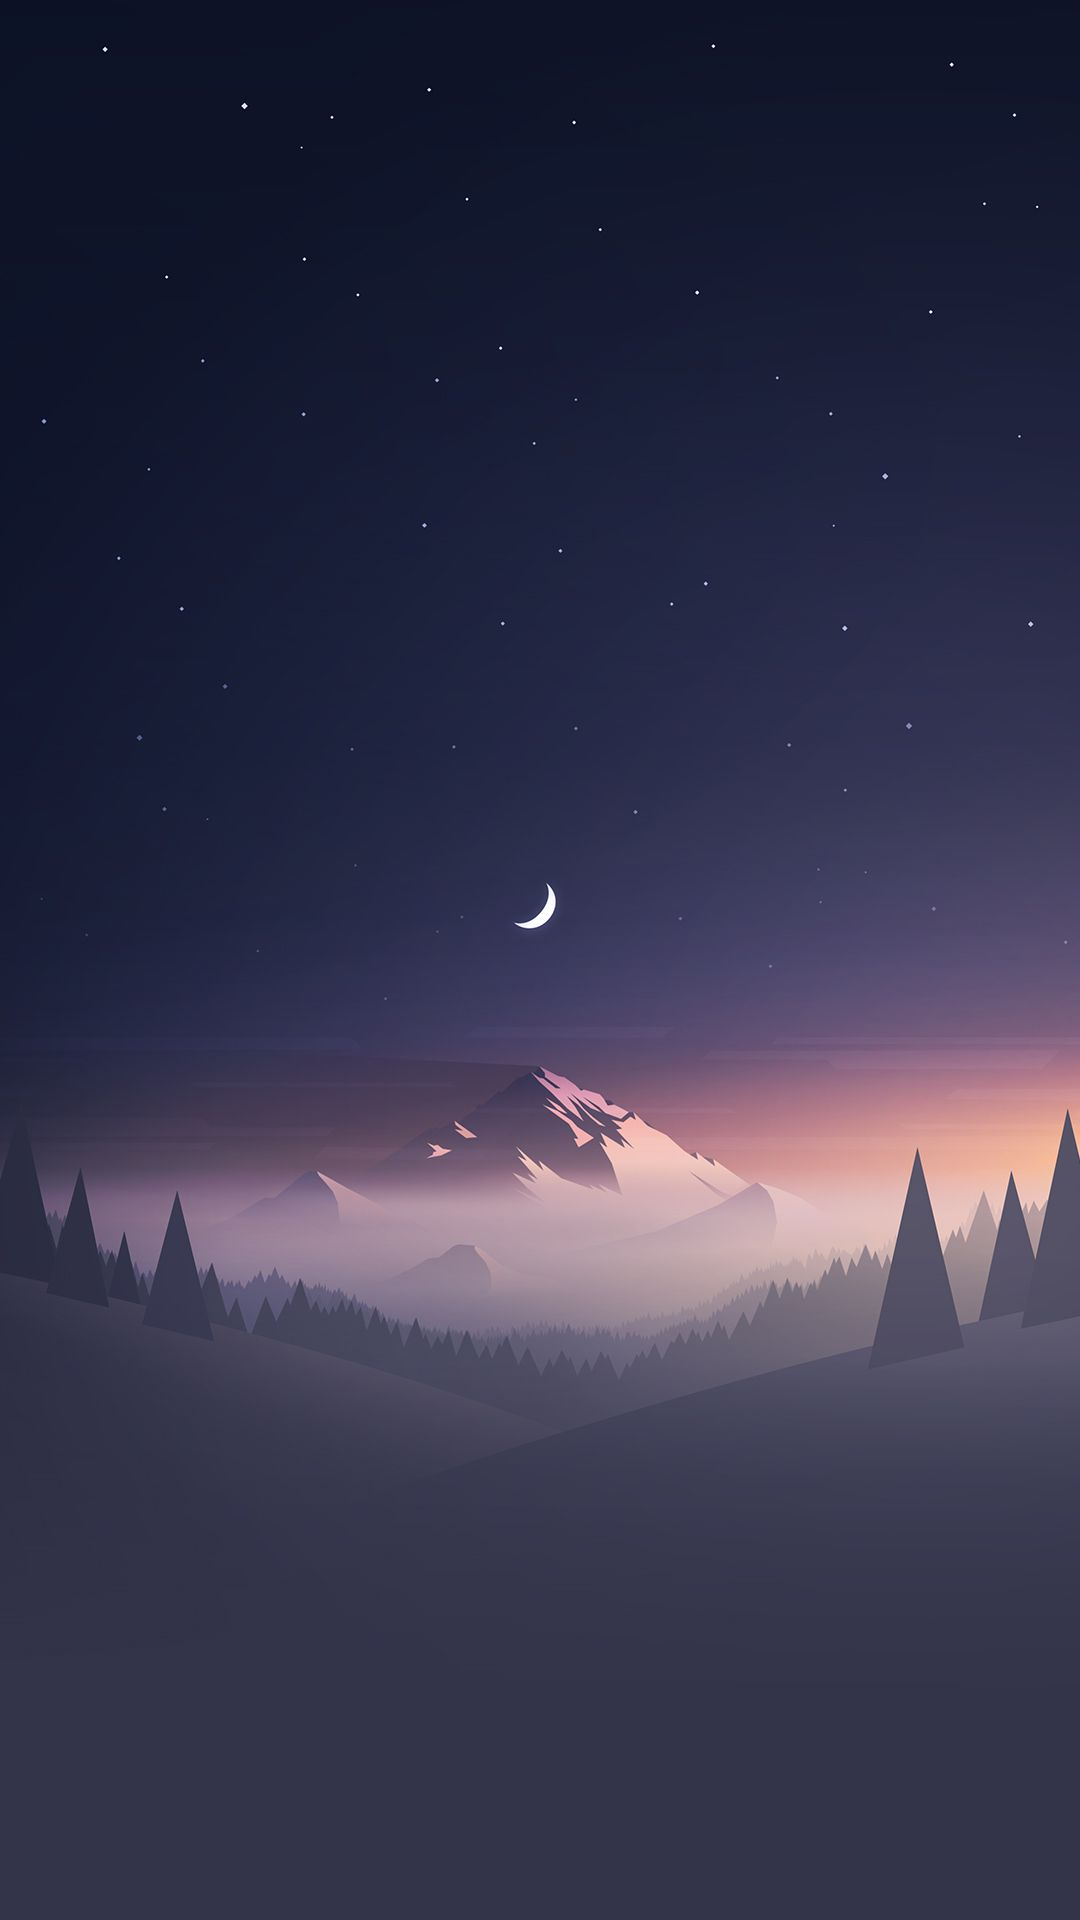 List of Good Moon Phone Wallpaper HD This Month by iphonewalls.net